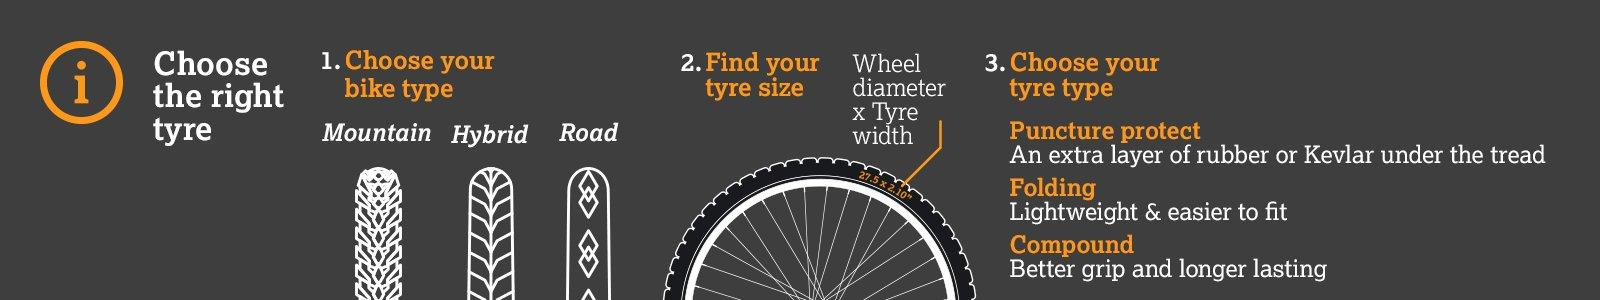 Choose the right bike tyre